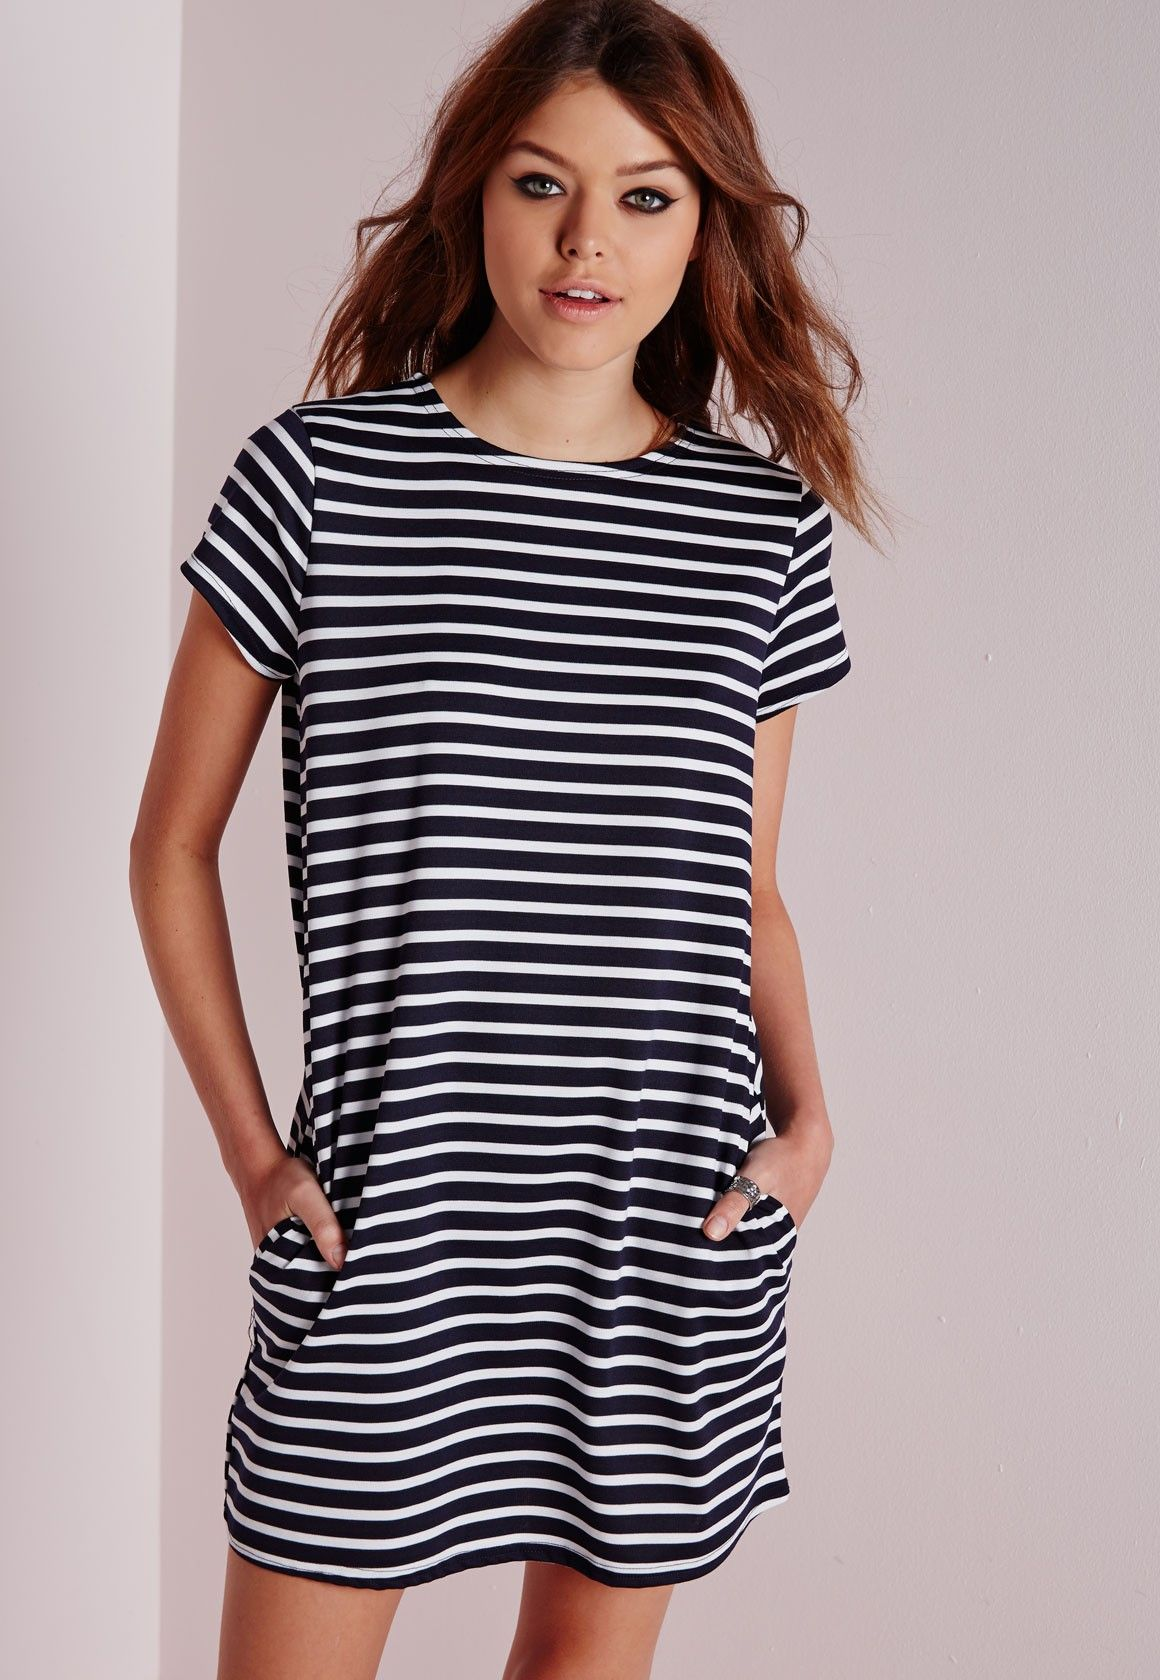 03f67cd2c78e Channel some major day cool vibes this season in this fierce oversized t-shirt  dress. Cause a little chaos in this short sleeved, navy and white striped  ...